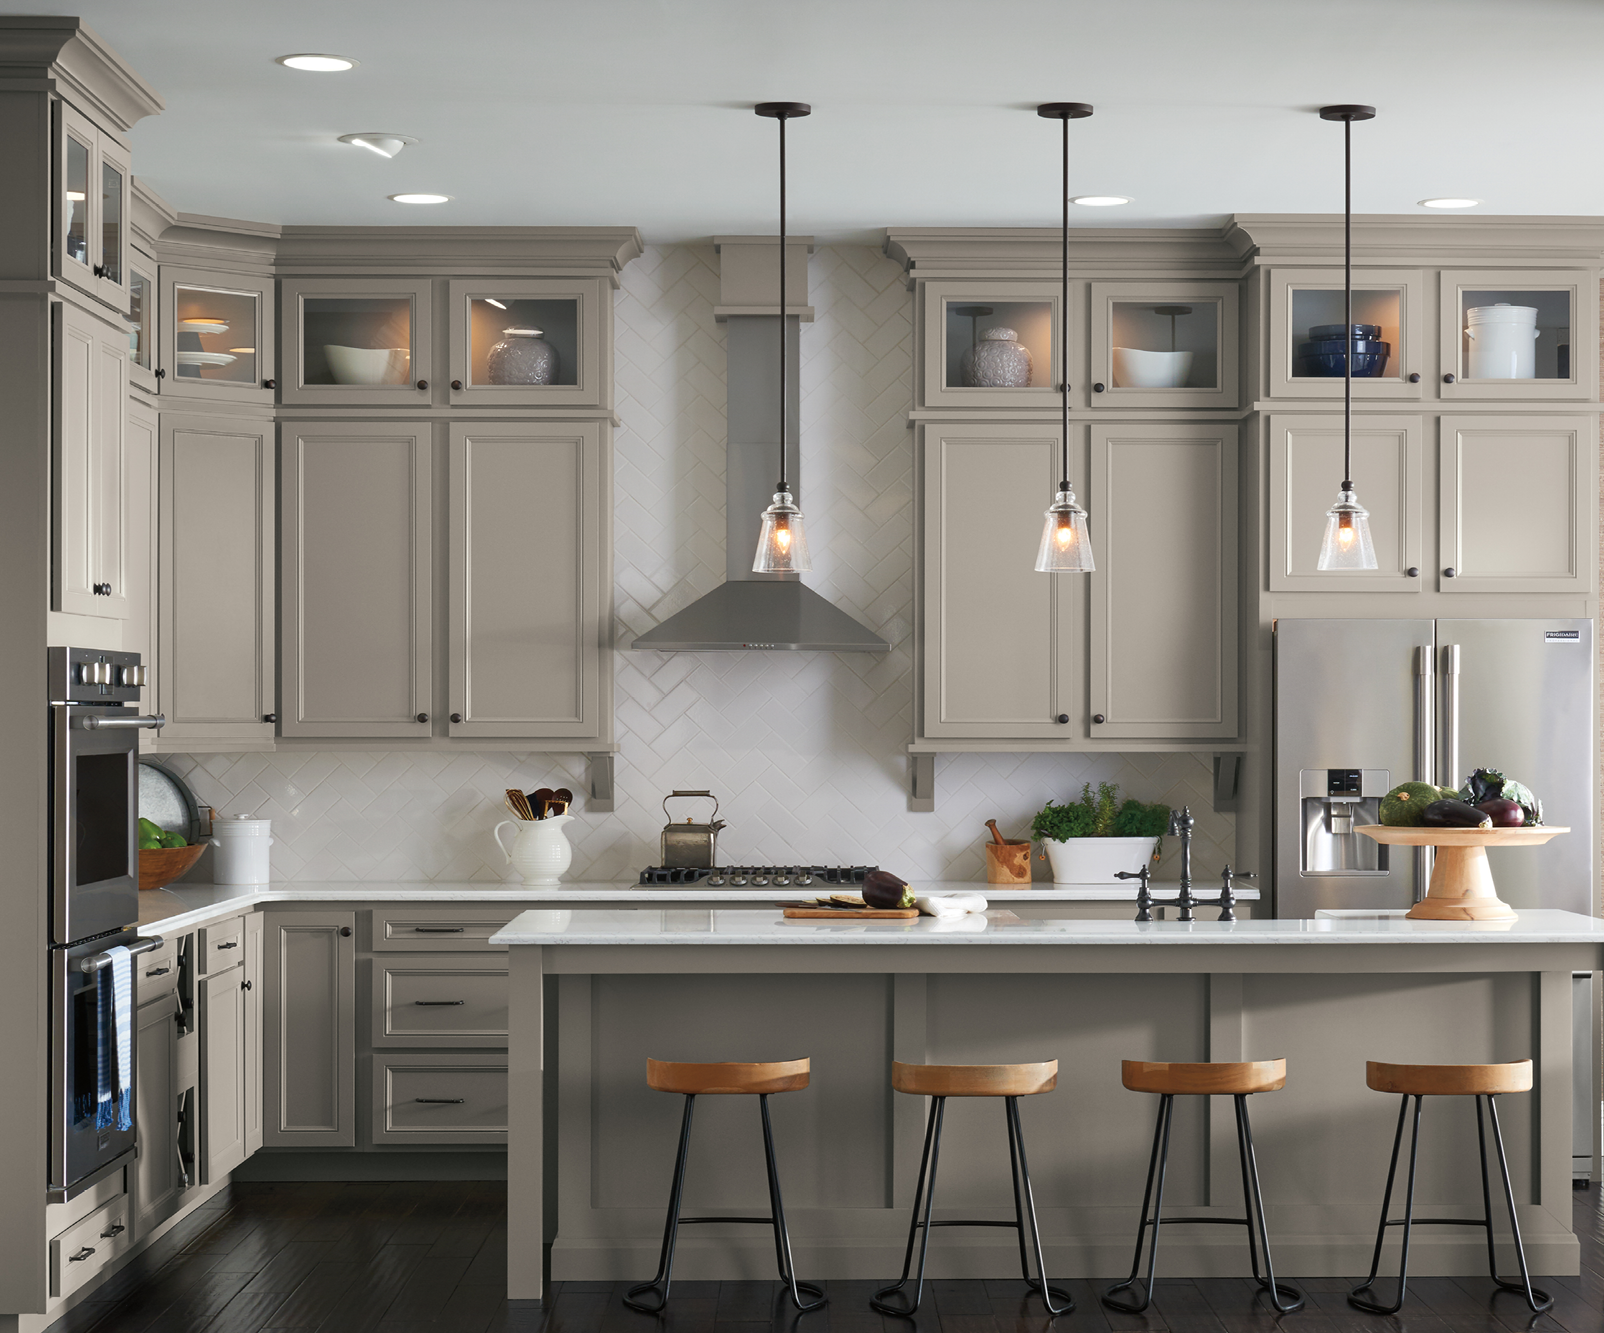 A Designer's Advice When Creating Your Custom Kitchen